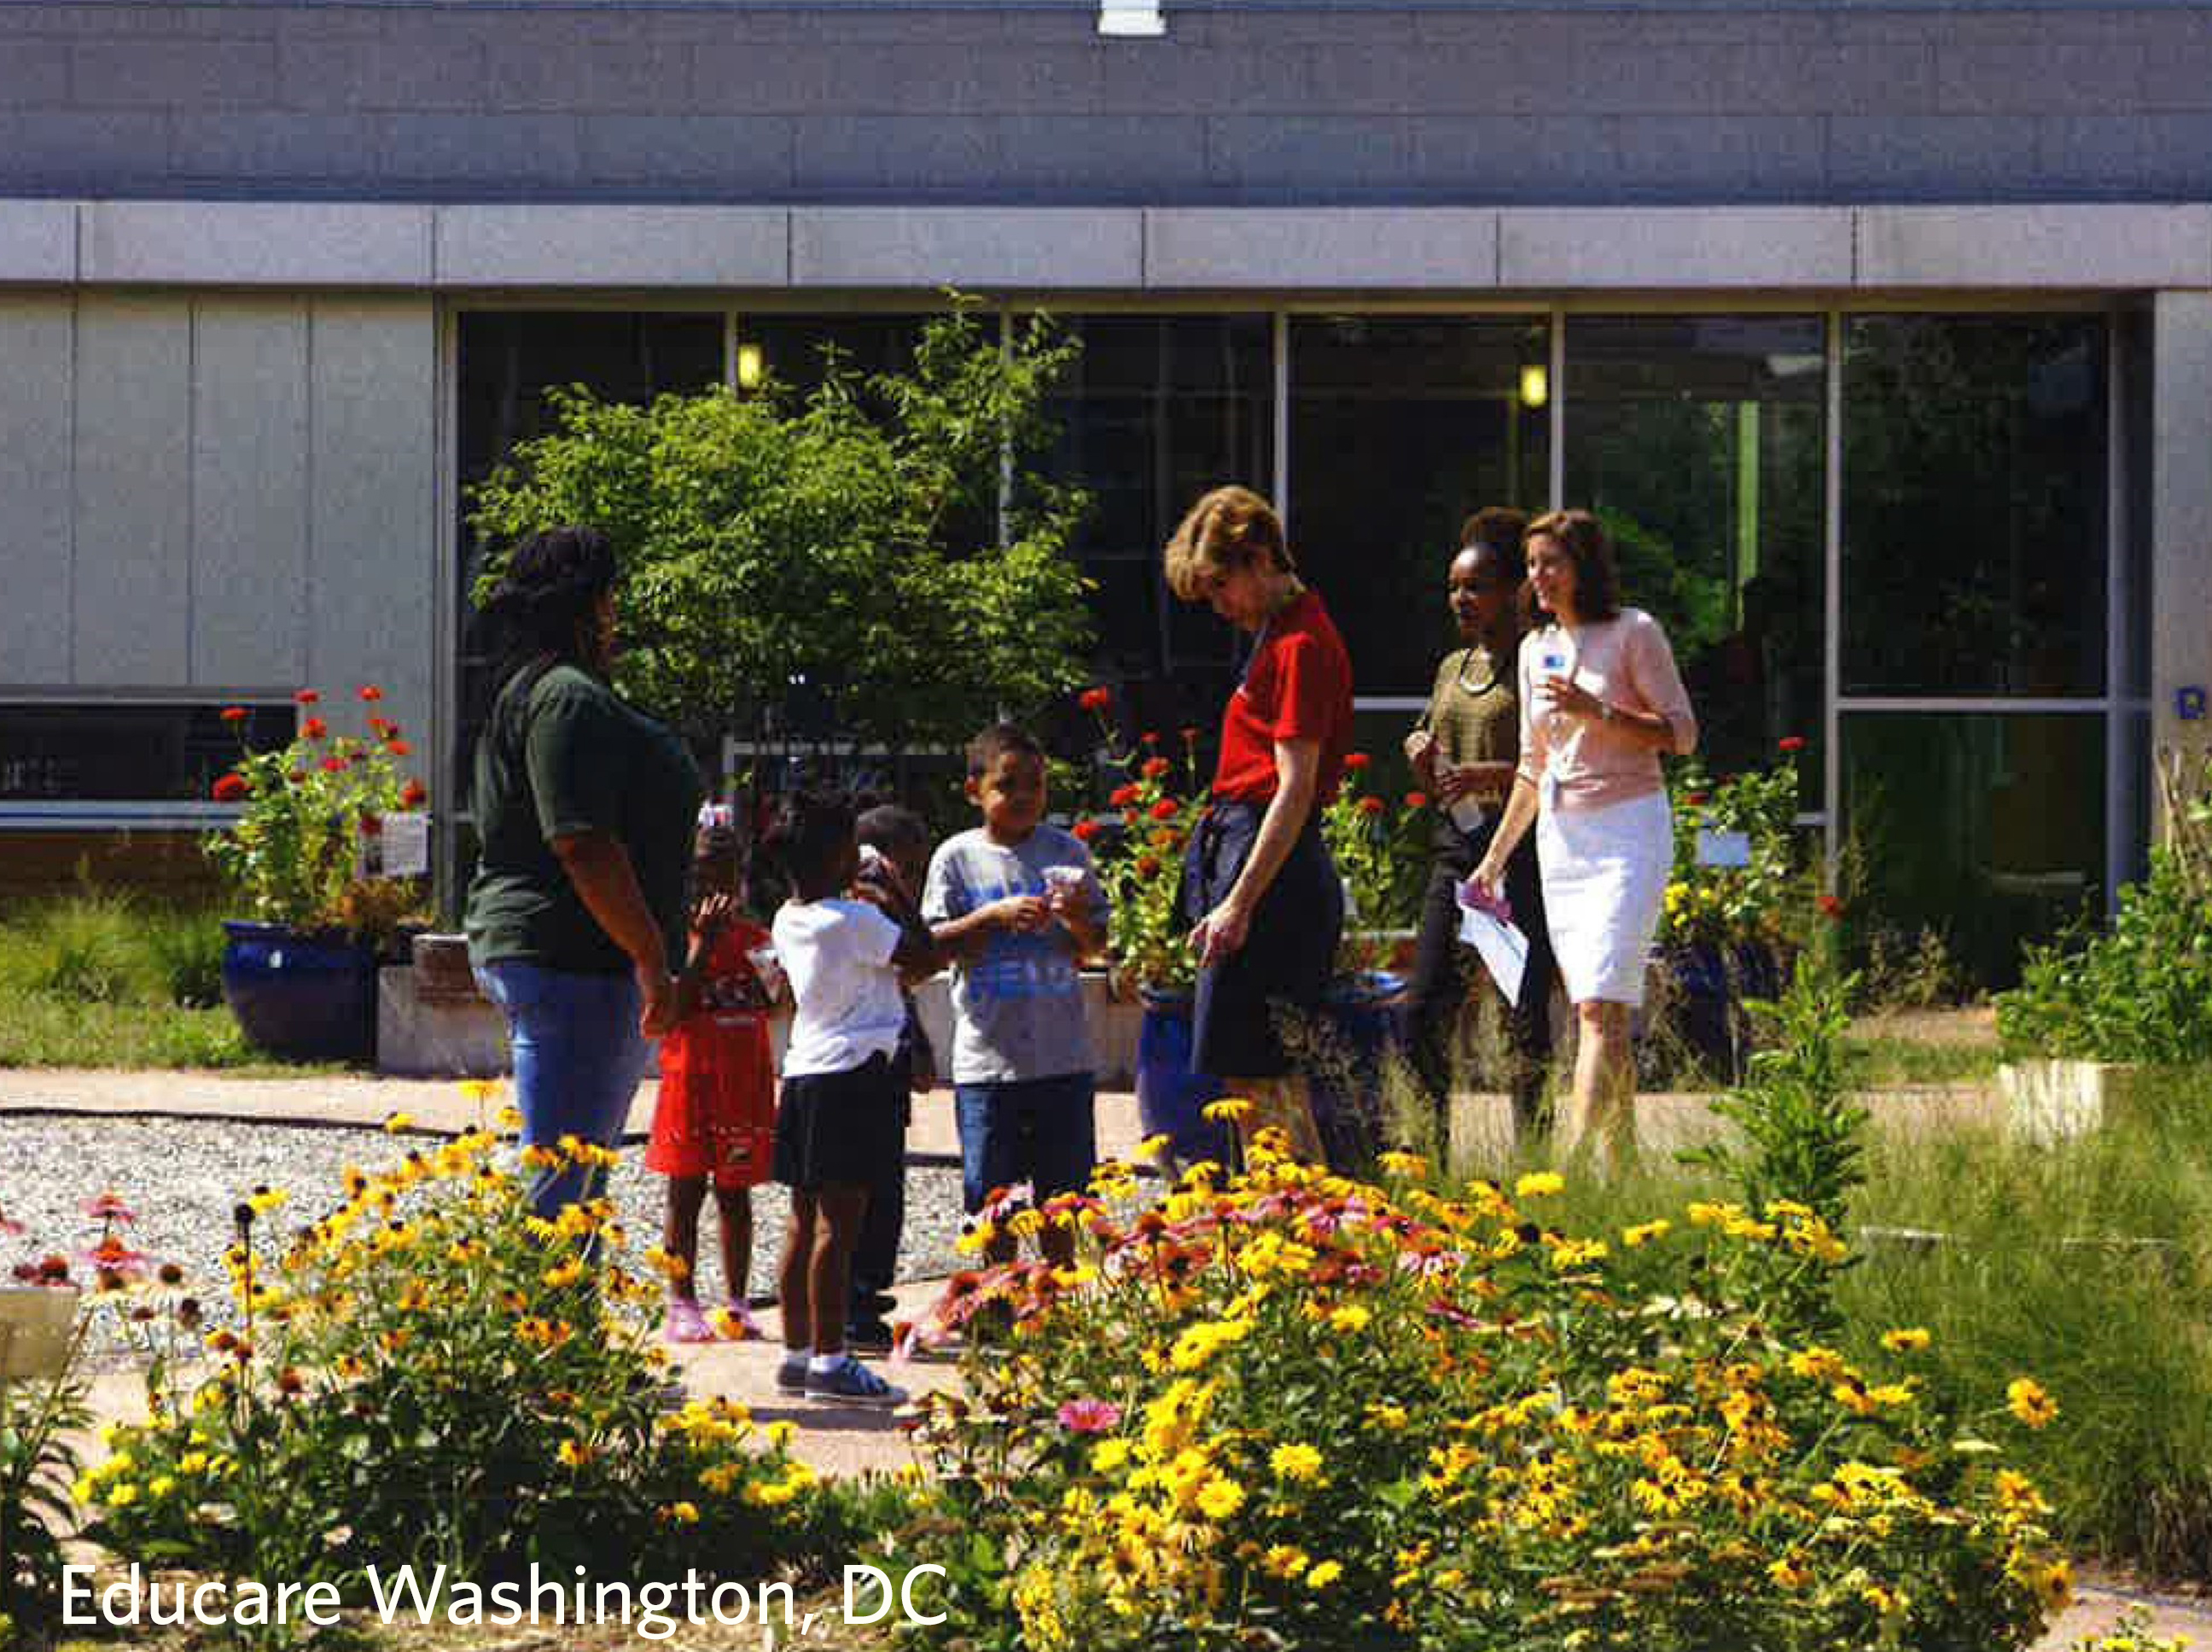 educare gardens plant a seed and watch children grow